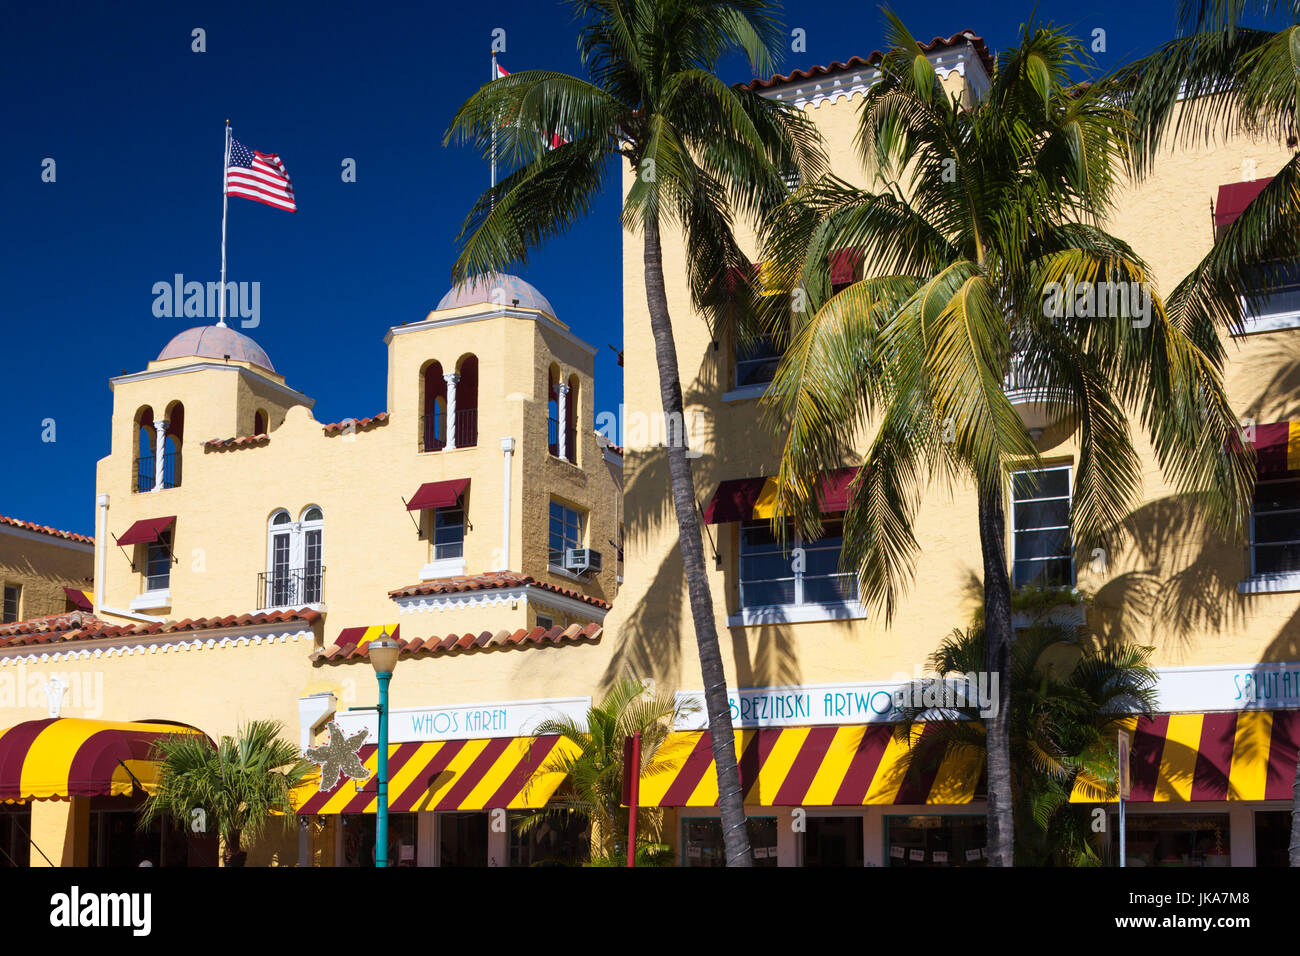 USA, Florida, Delray Beach, Colony Hotel and Cabana Club - Stock Image